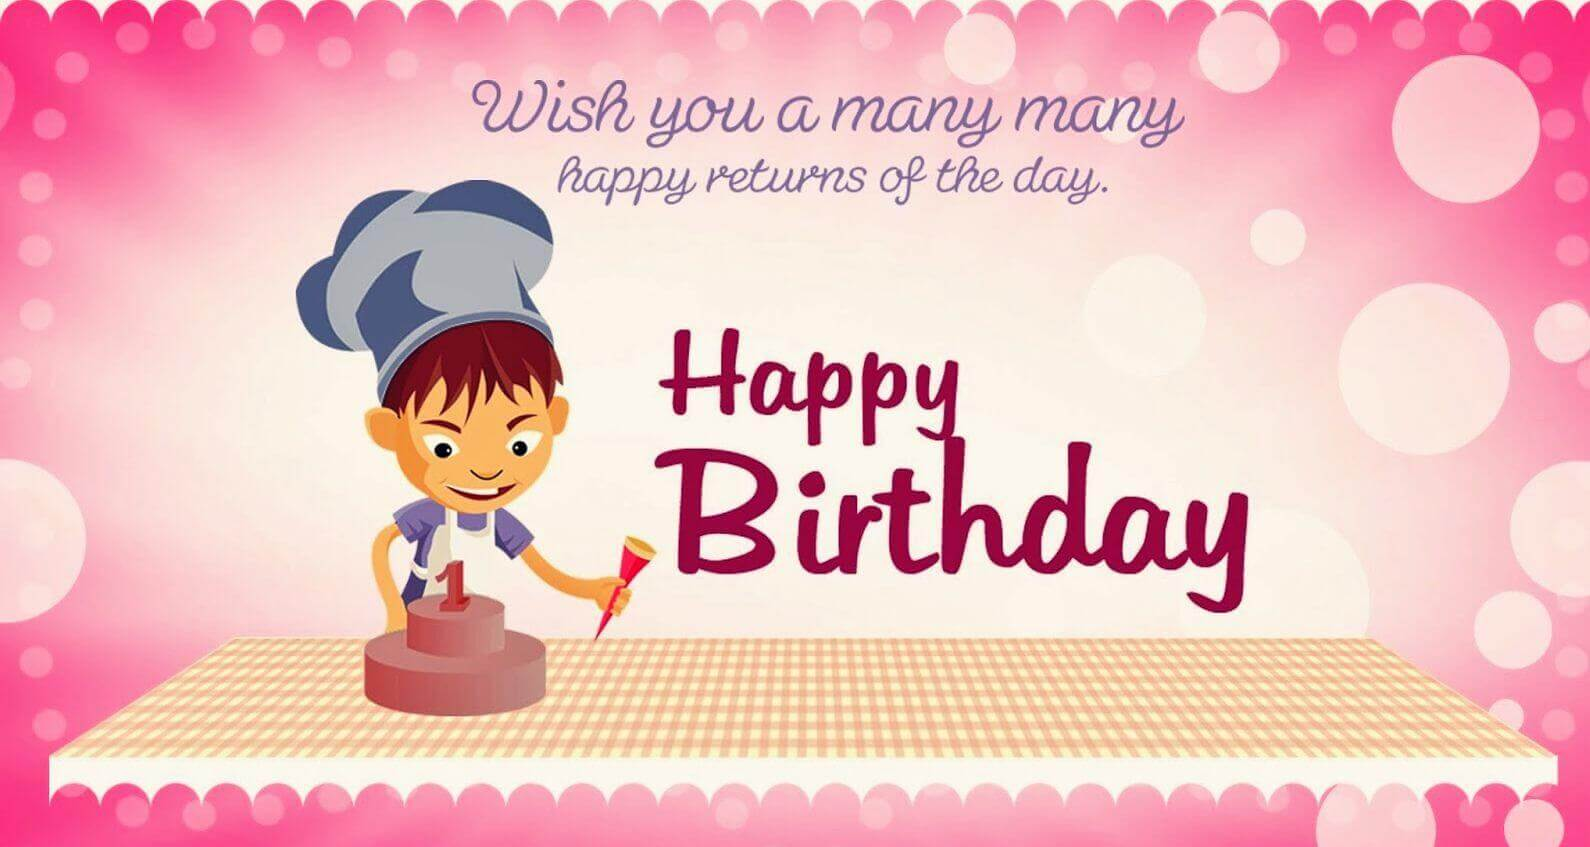 www happy birthday greeting cards com ; bday-status-images